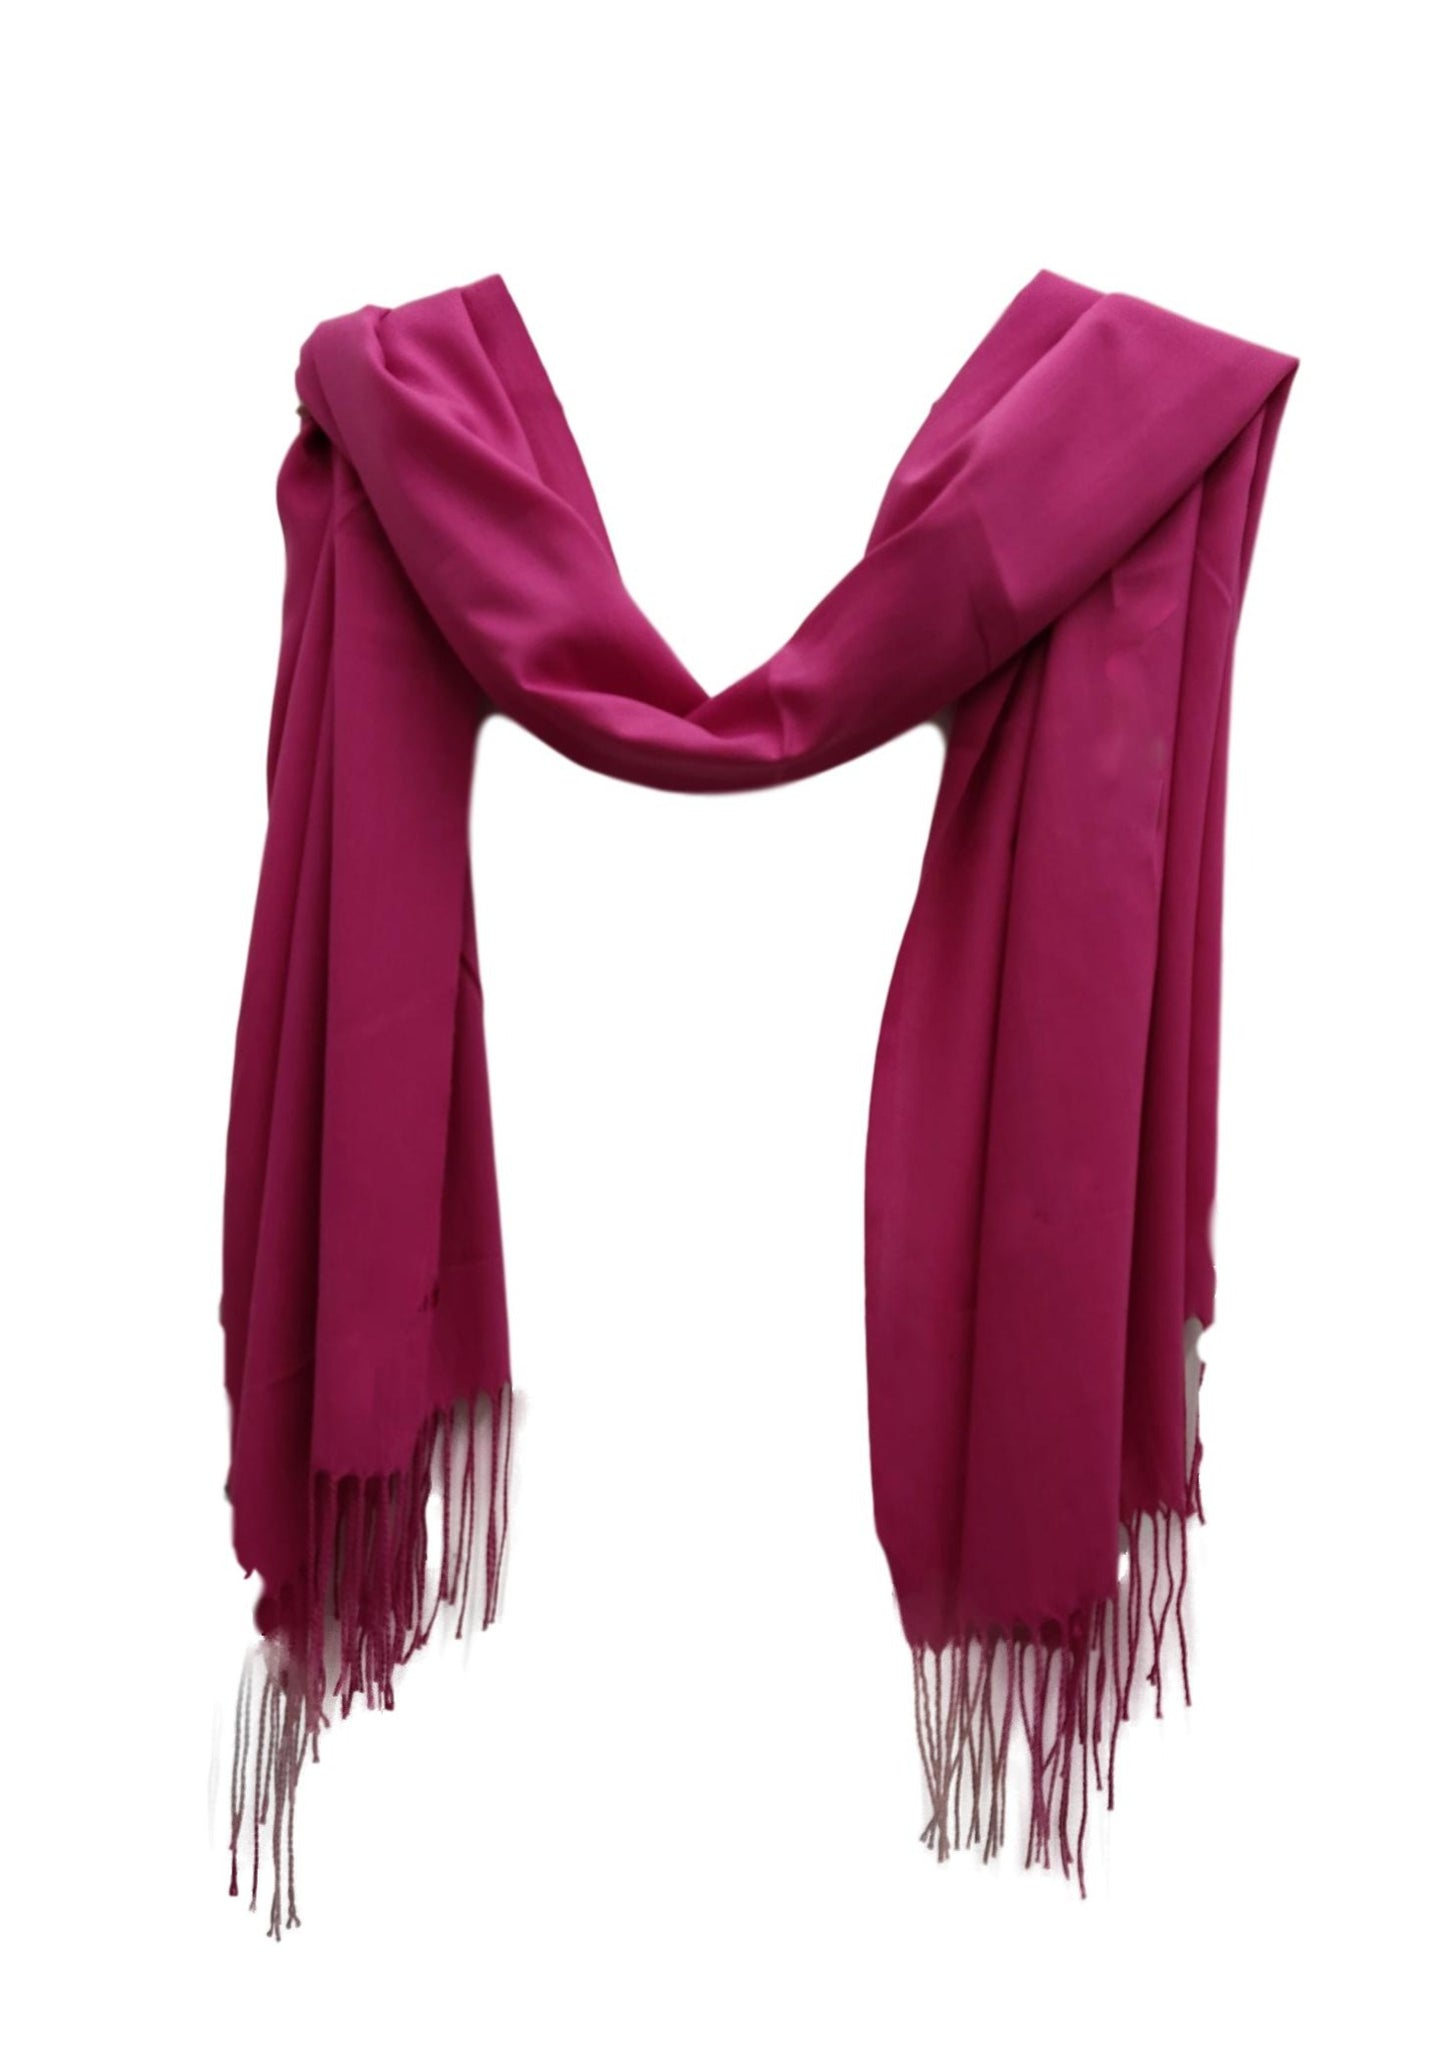 Fuschia pink linen style scarf